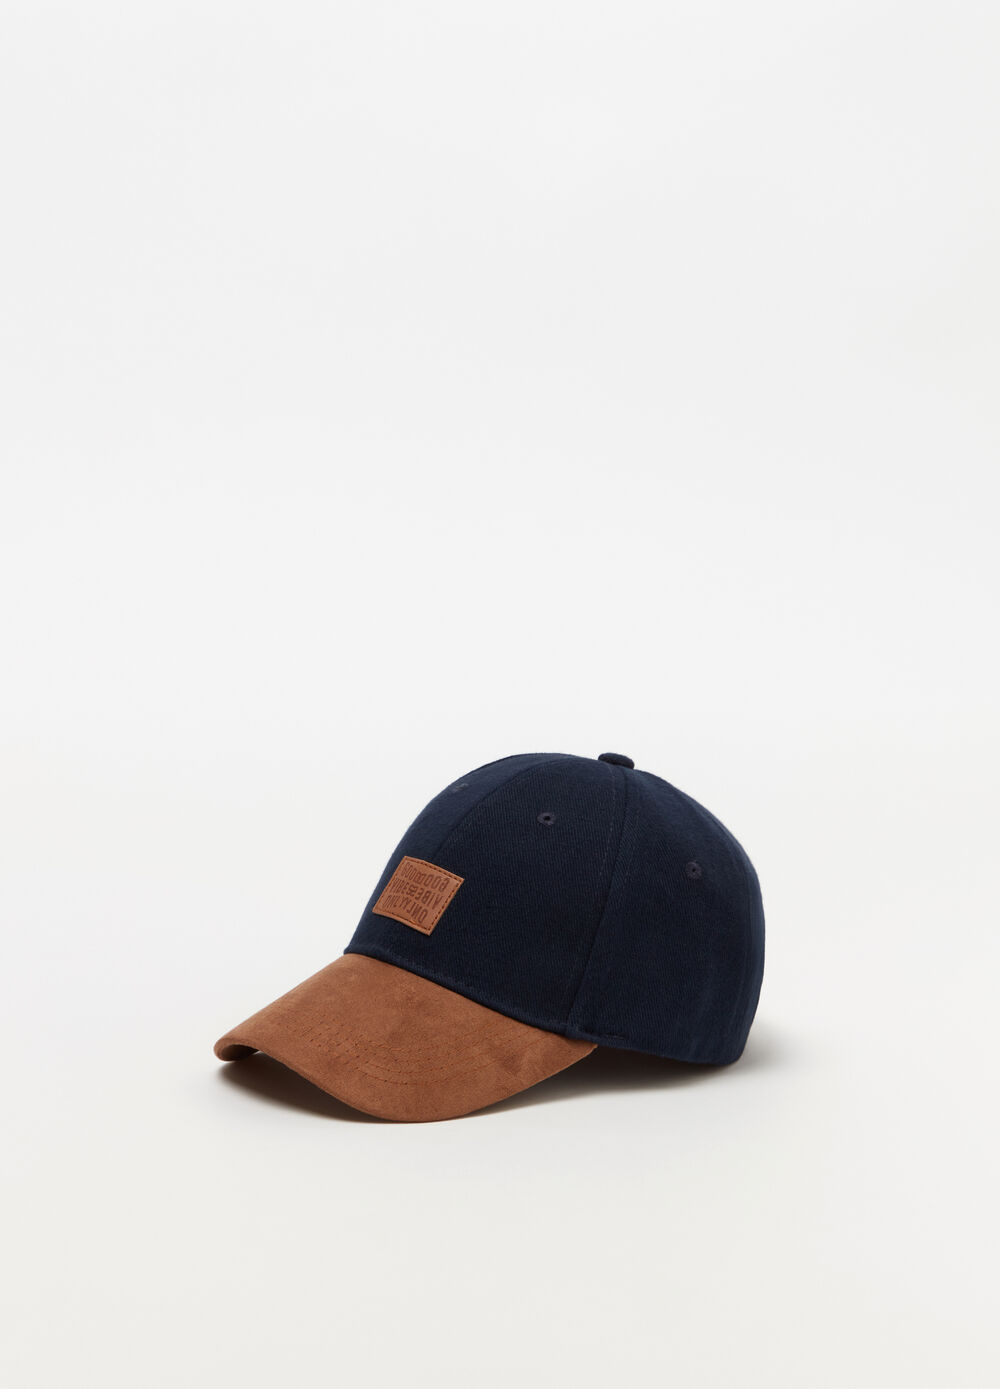 Baseball cap frontino in alcantara e label